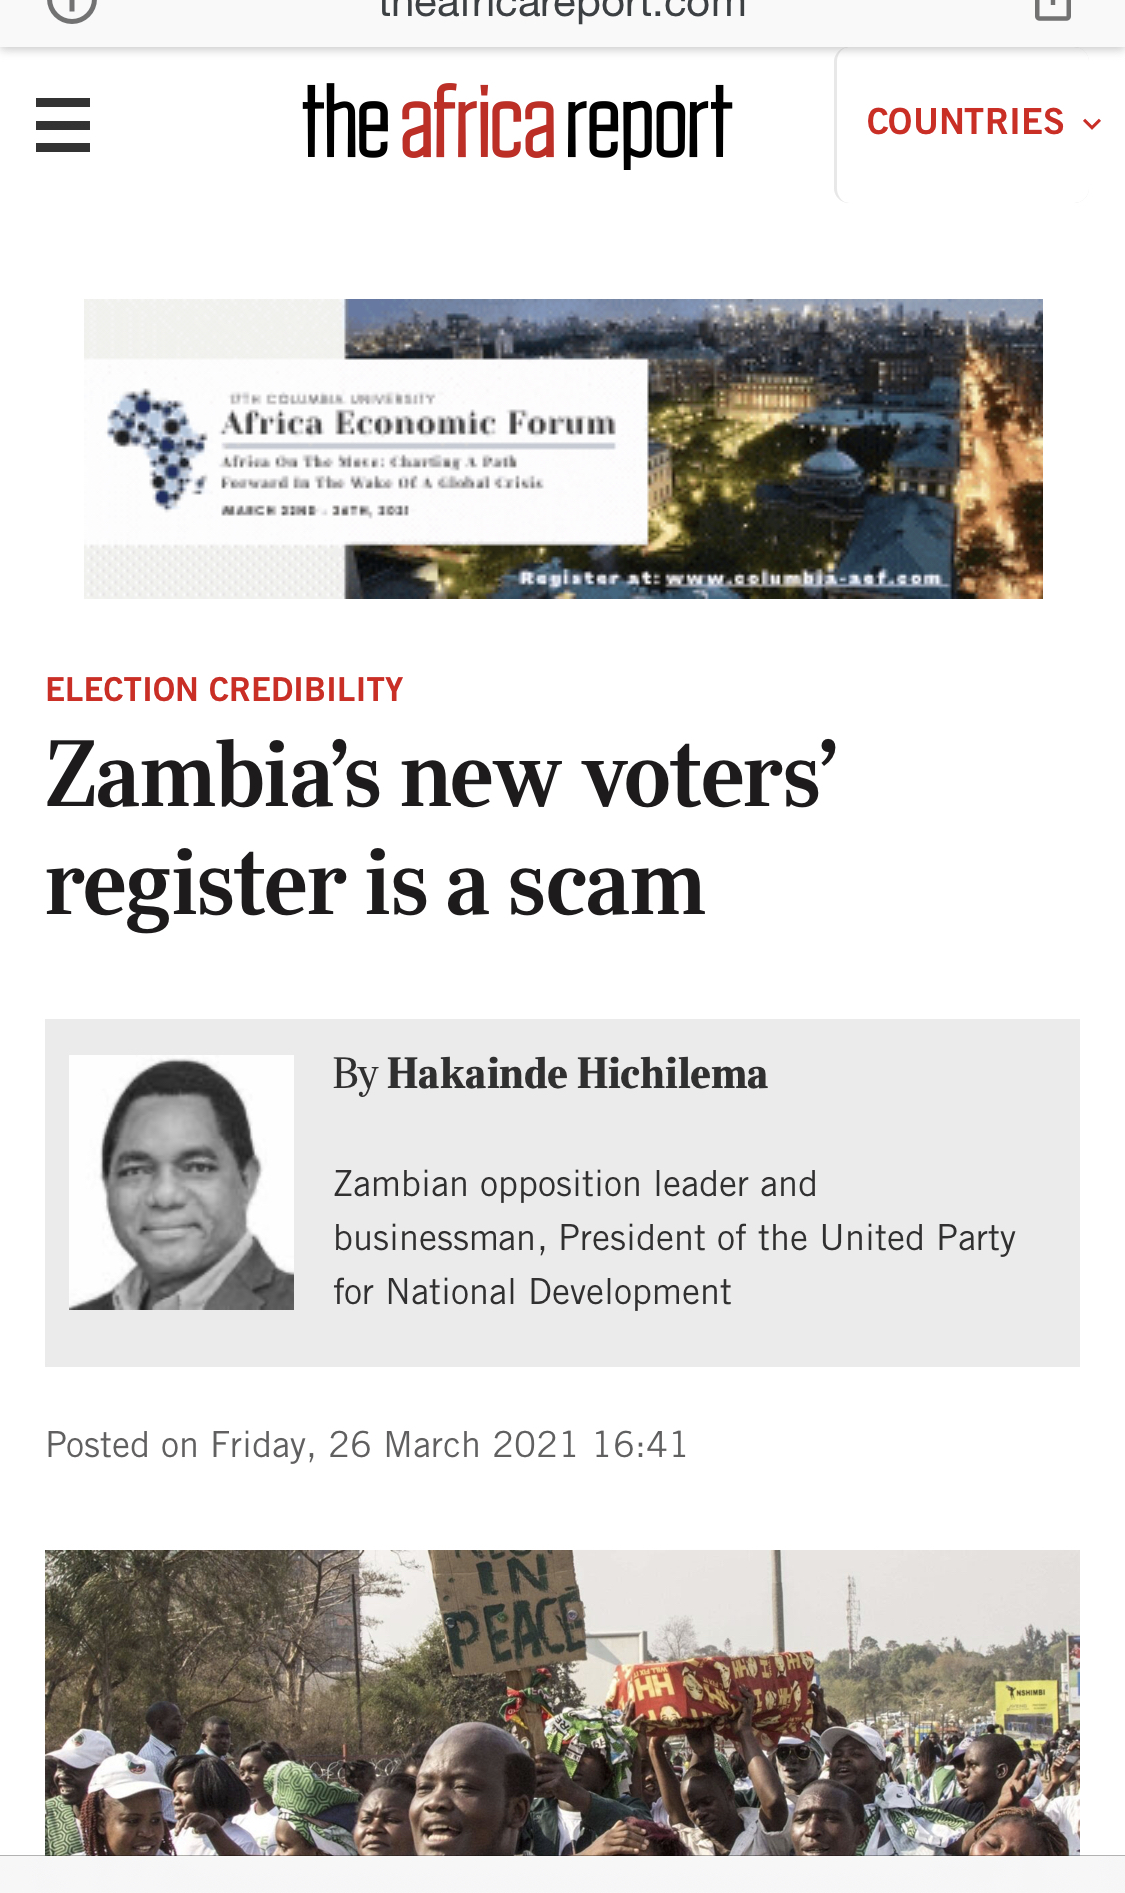 Zambia's new voter register is a scam